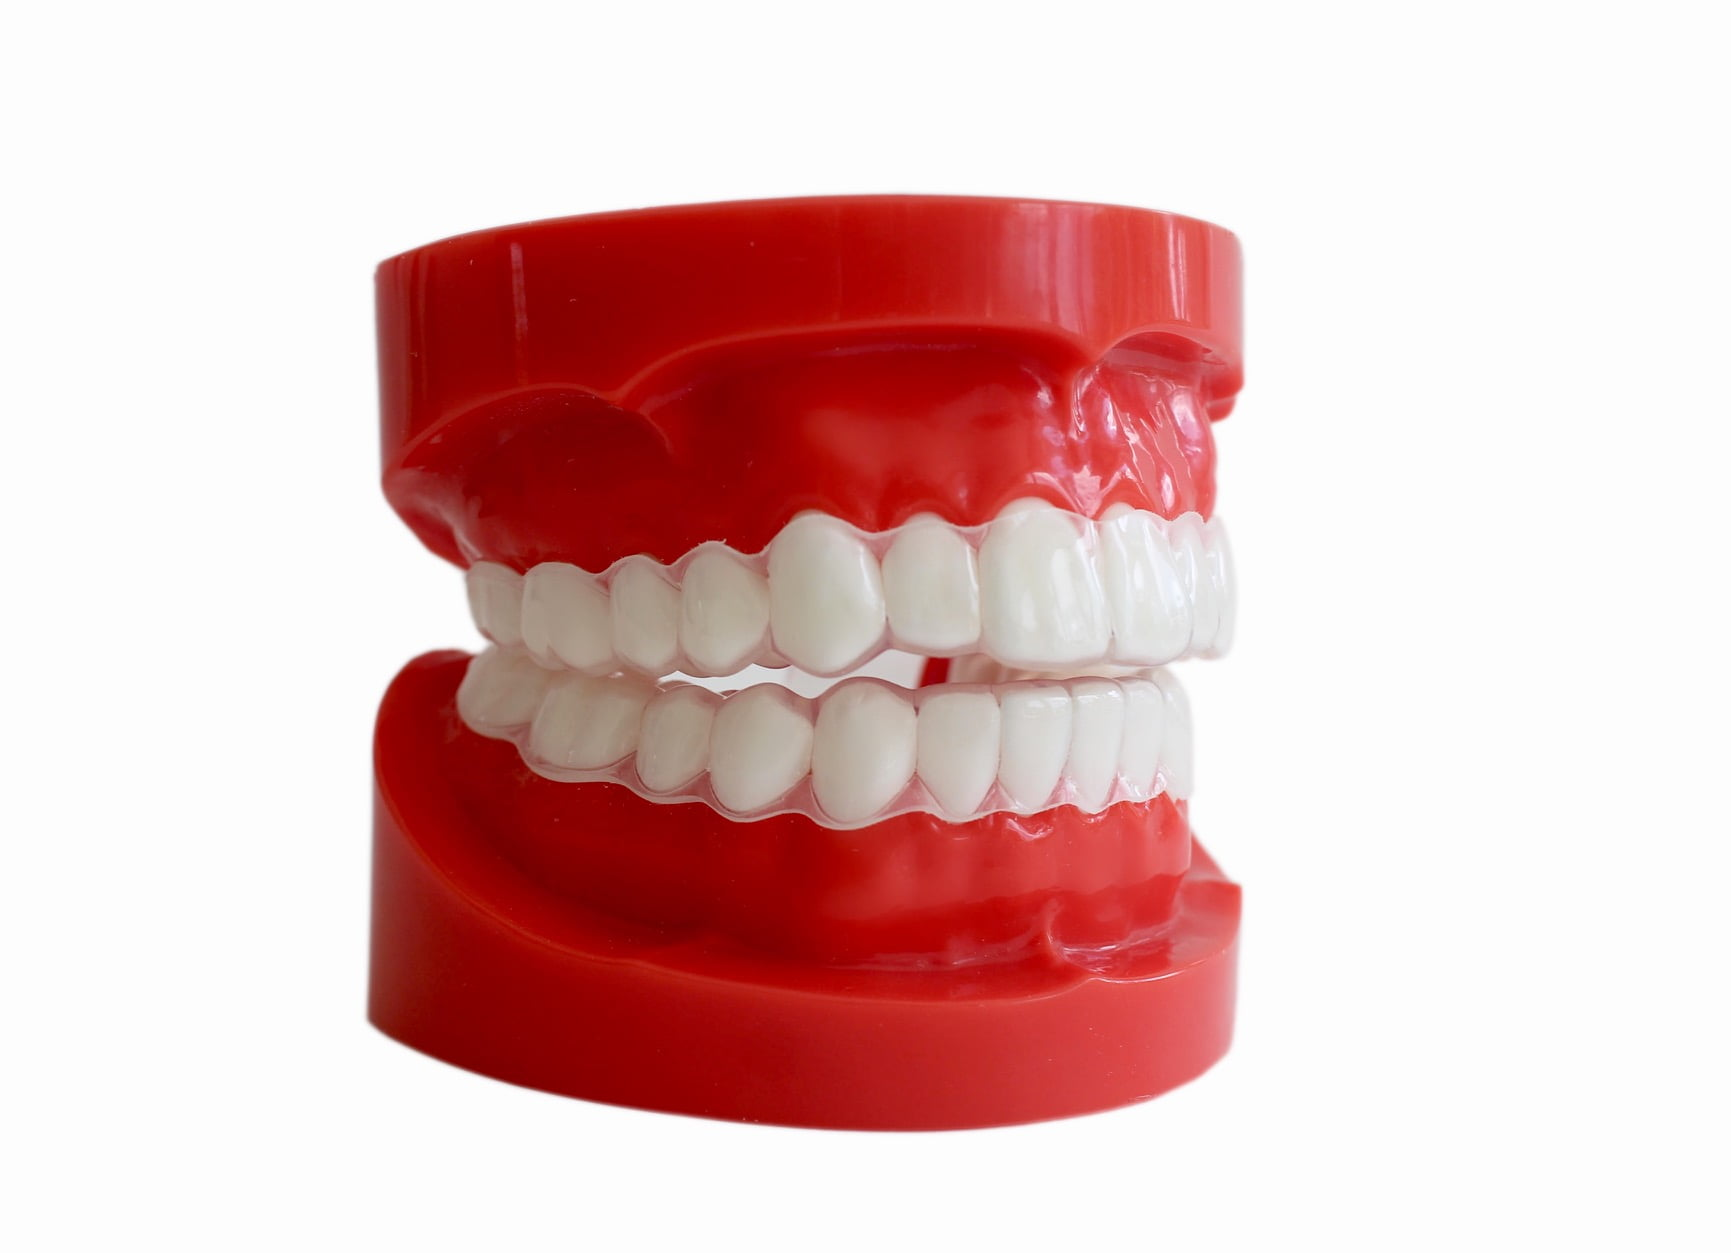 sentinel soft dental guards for tongue biting/cheek biting